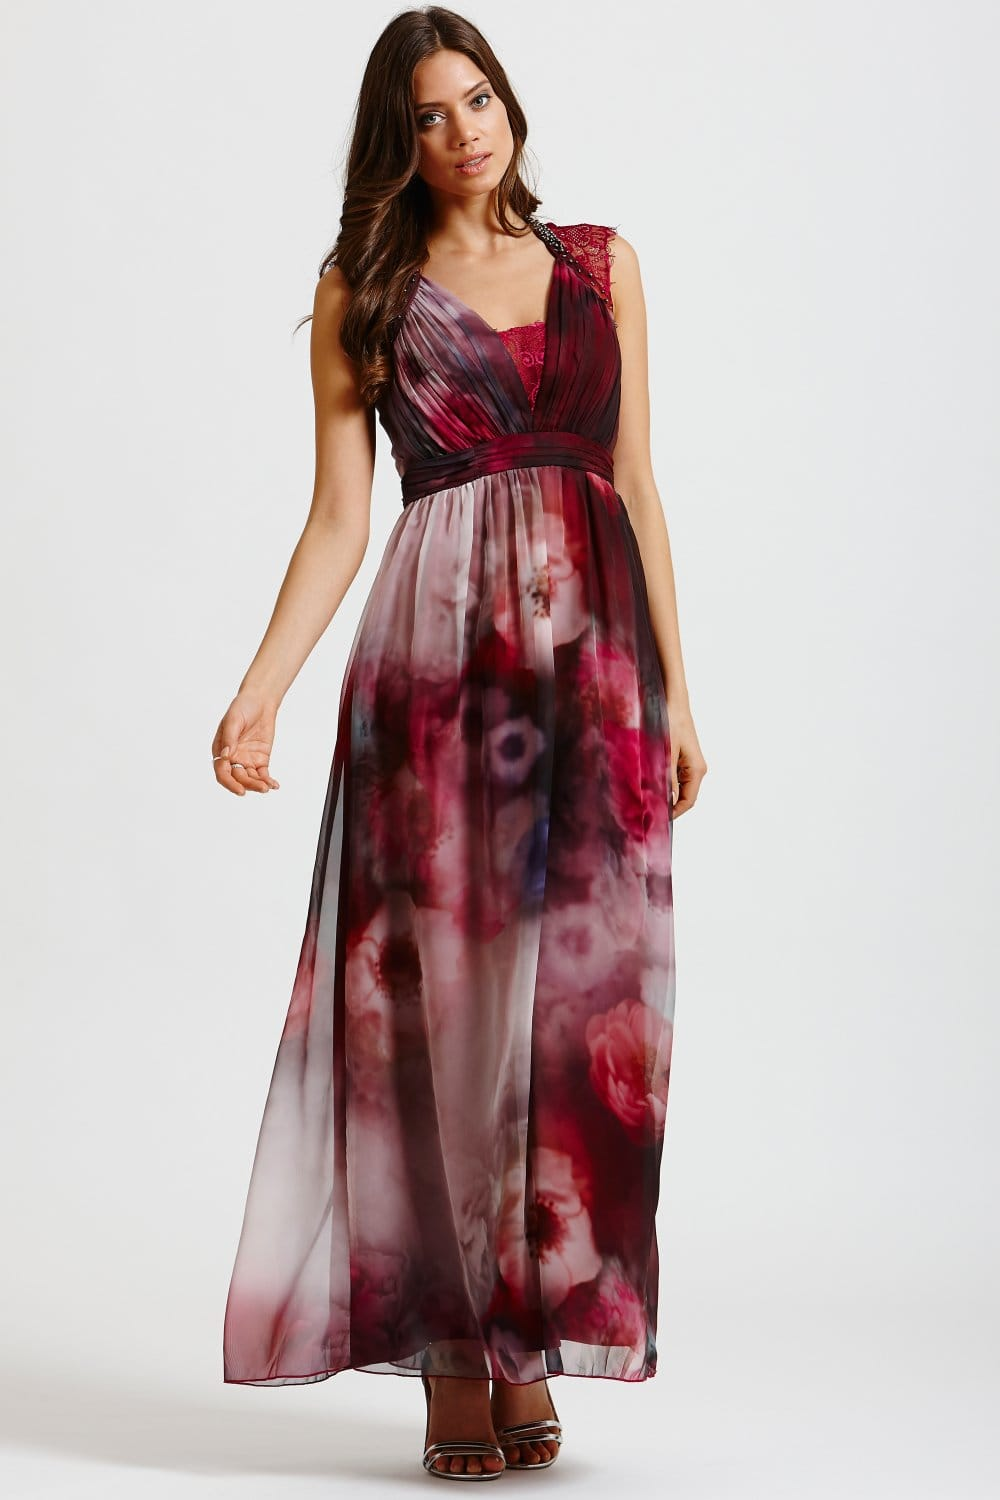 Little Mistress Berry Watercolour Lace Shoulder Maxi Dress - Little Mistress from Little Mistress UK